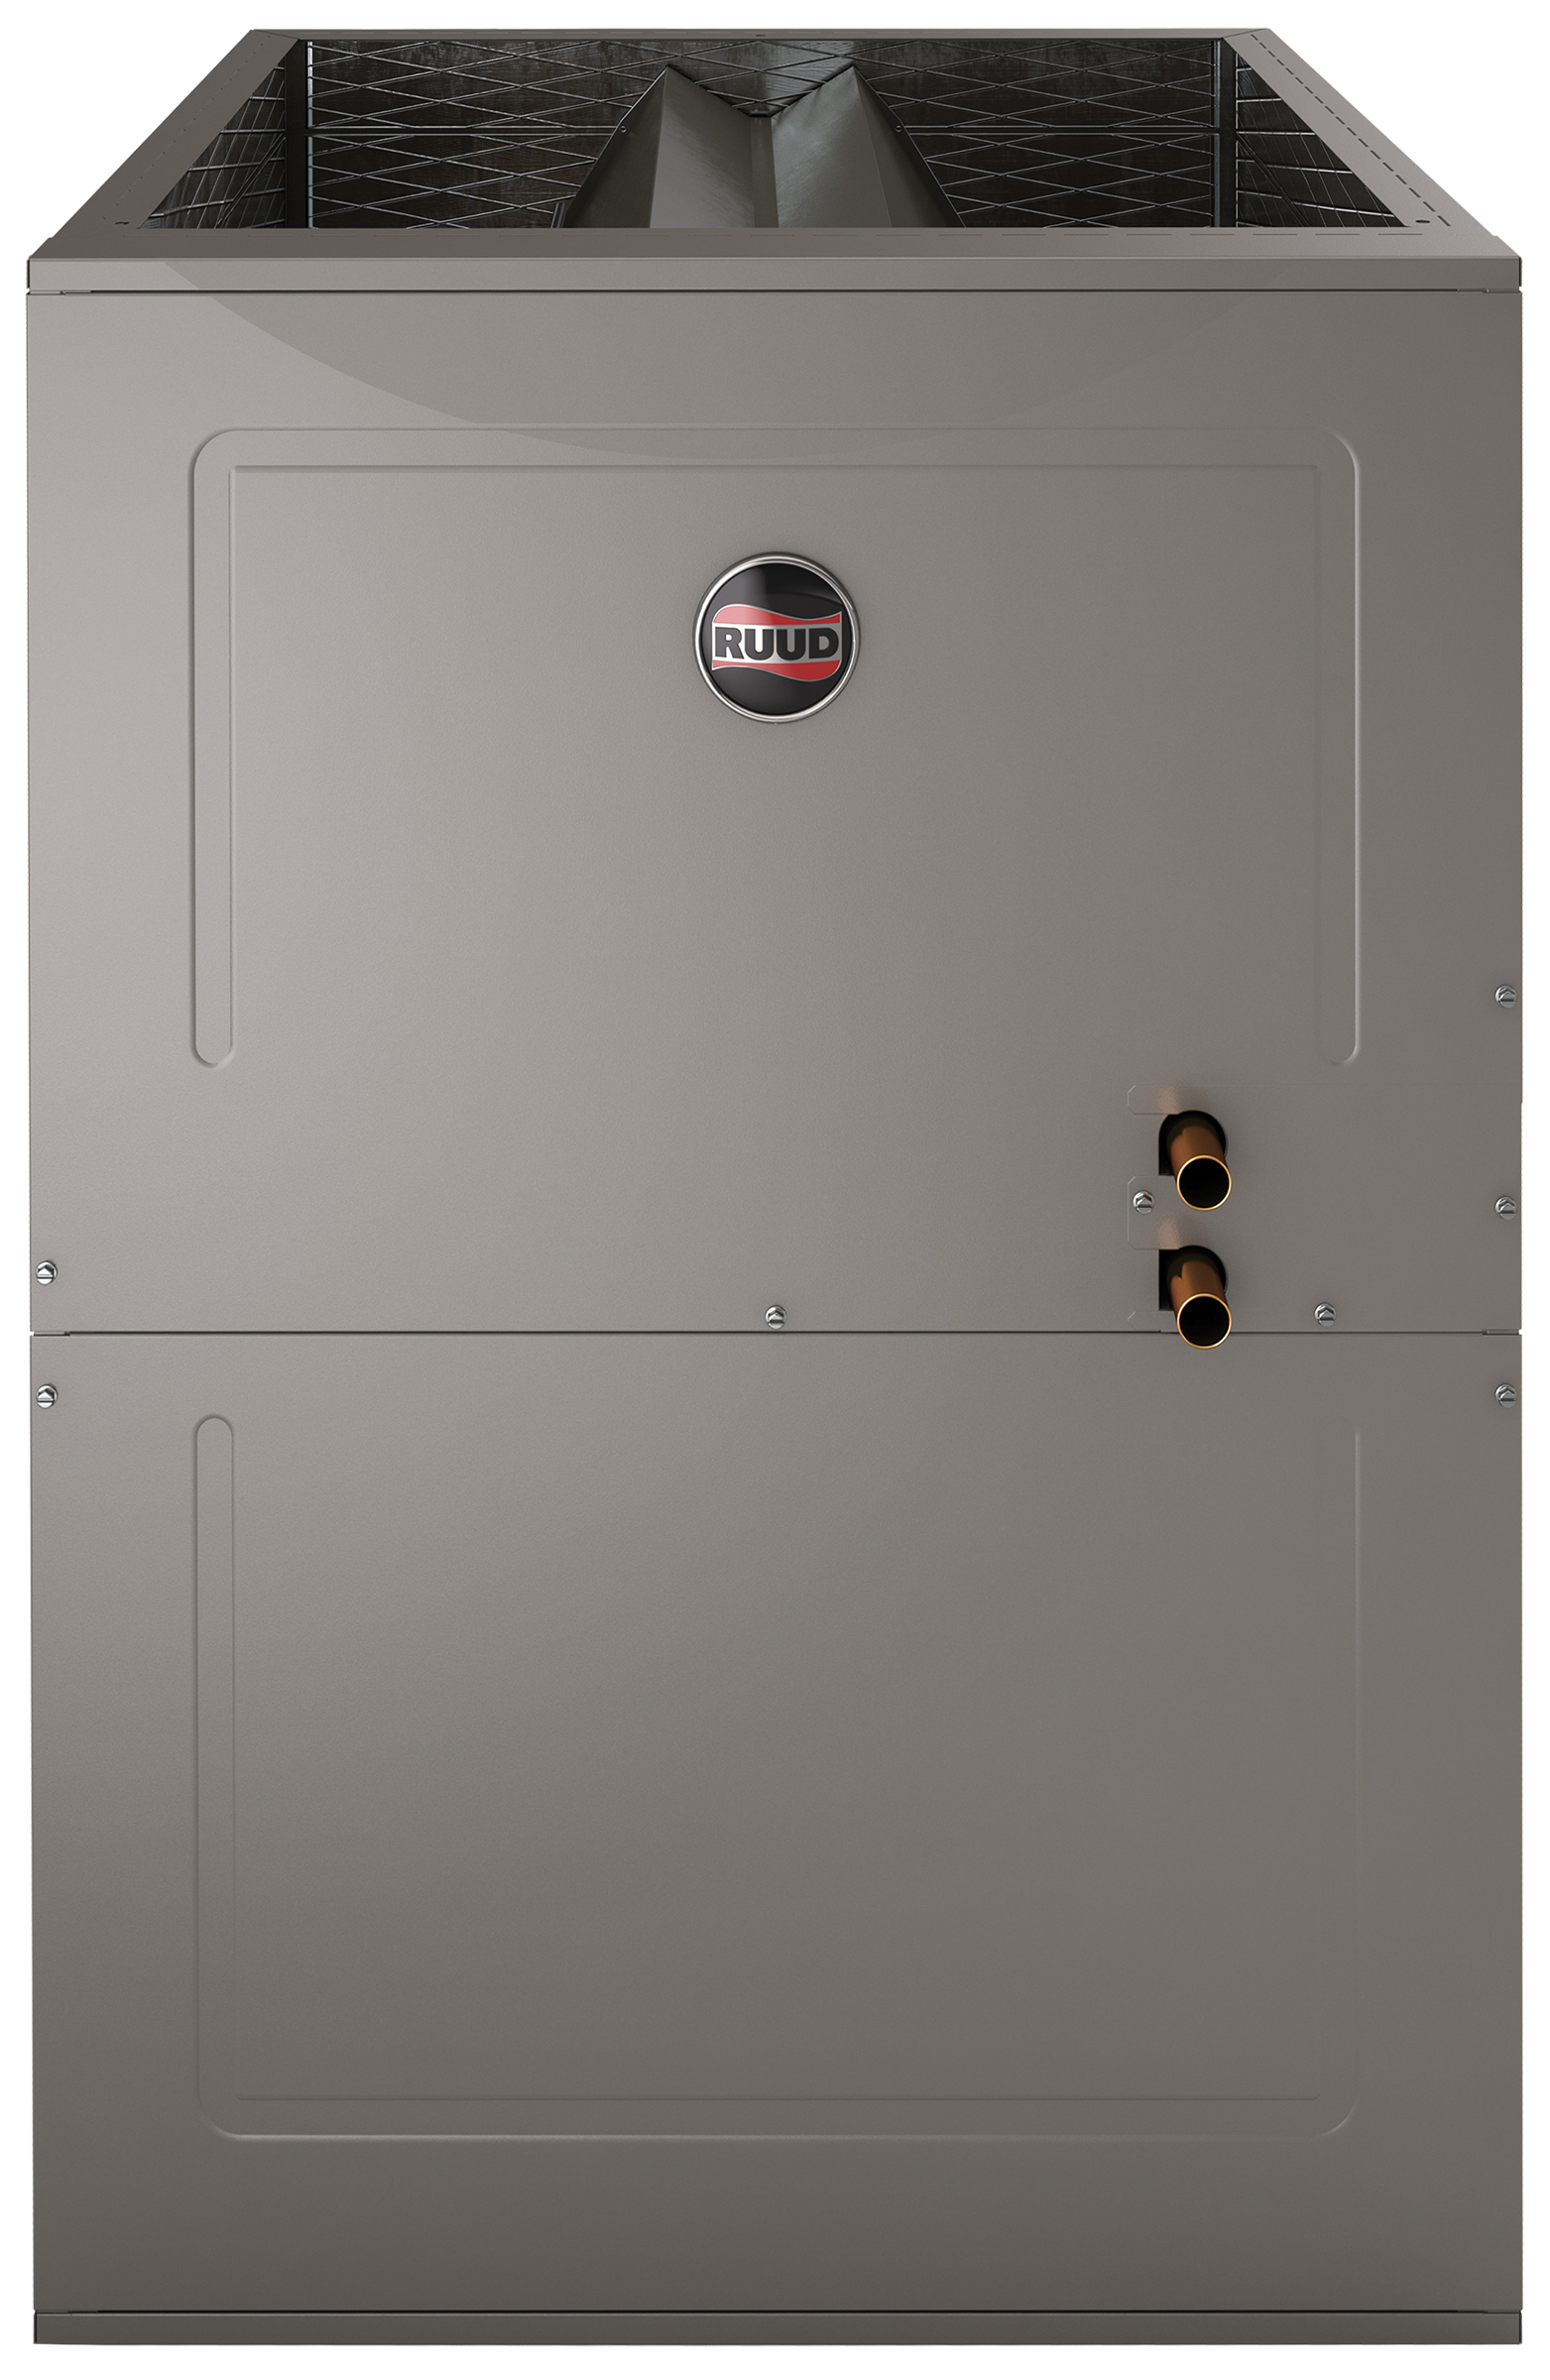 Hydronic Air Handler - Powered by Tankless Technology (RW1T)